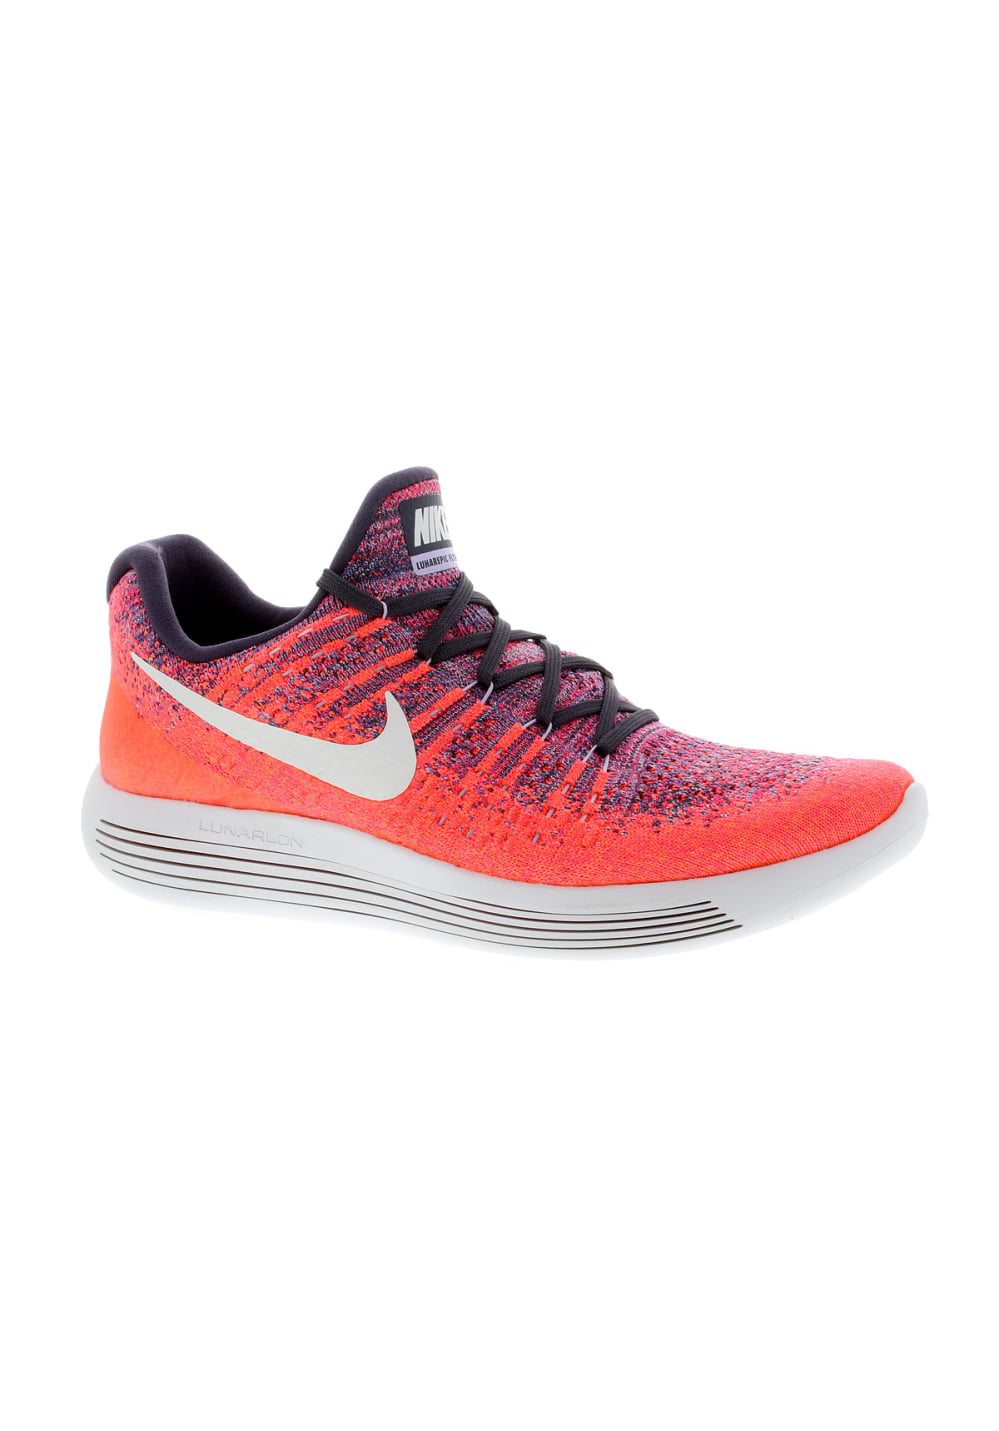 2b64123f7a50 Next. -60%. Nike. Lunarepic Low Flyknit 2 - Running shoes for Women